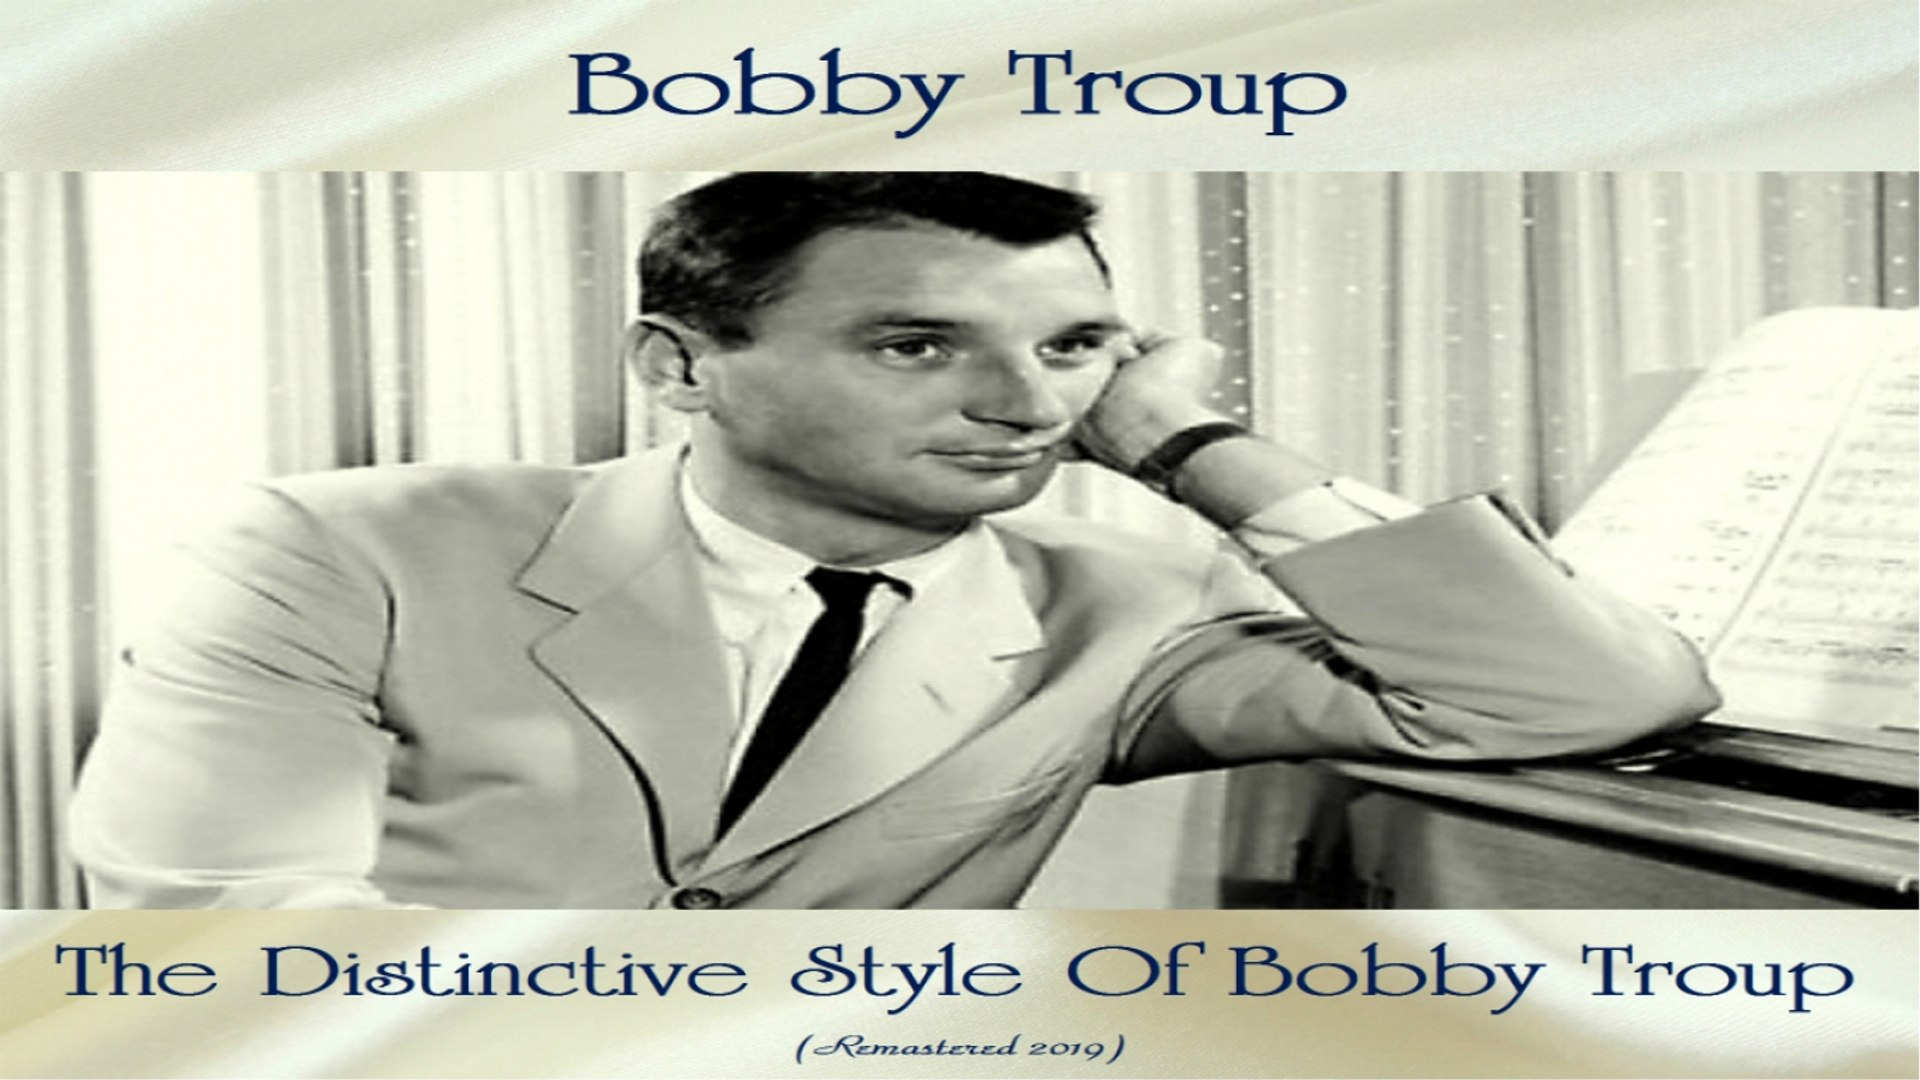 bobby troup quintetbobby troup quintet, bobby troup girl talk, bobby troup discogs, bobby troup route 66, bobby troup route 66 youtube, bobby troup daddy, bobby troup, bobby troup net worth, bobby troup route 66 lyrics, bobby troup sings johnny mercer, bobby troup three bears, bobby troup allmusic, bobby troup and julie london, bobby troup songs, bobby troup cause of death, bobby troup death, bobby troup mash, bobby troup perry mason, bobby troup actor, bobby troup emergency